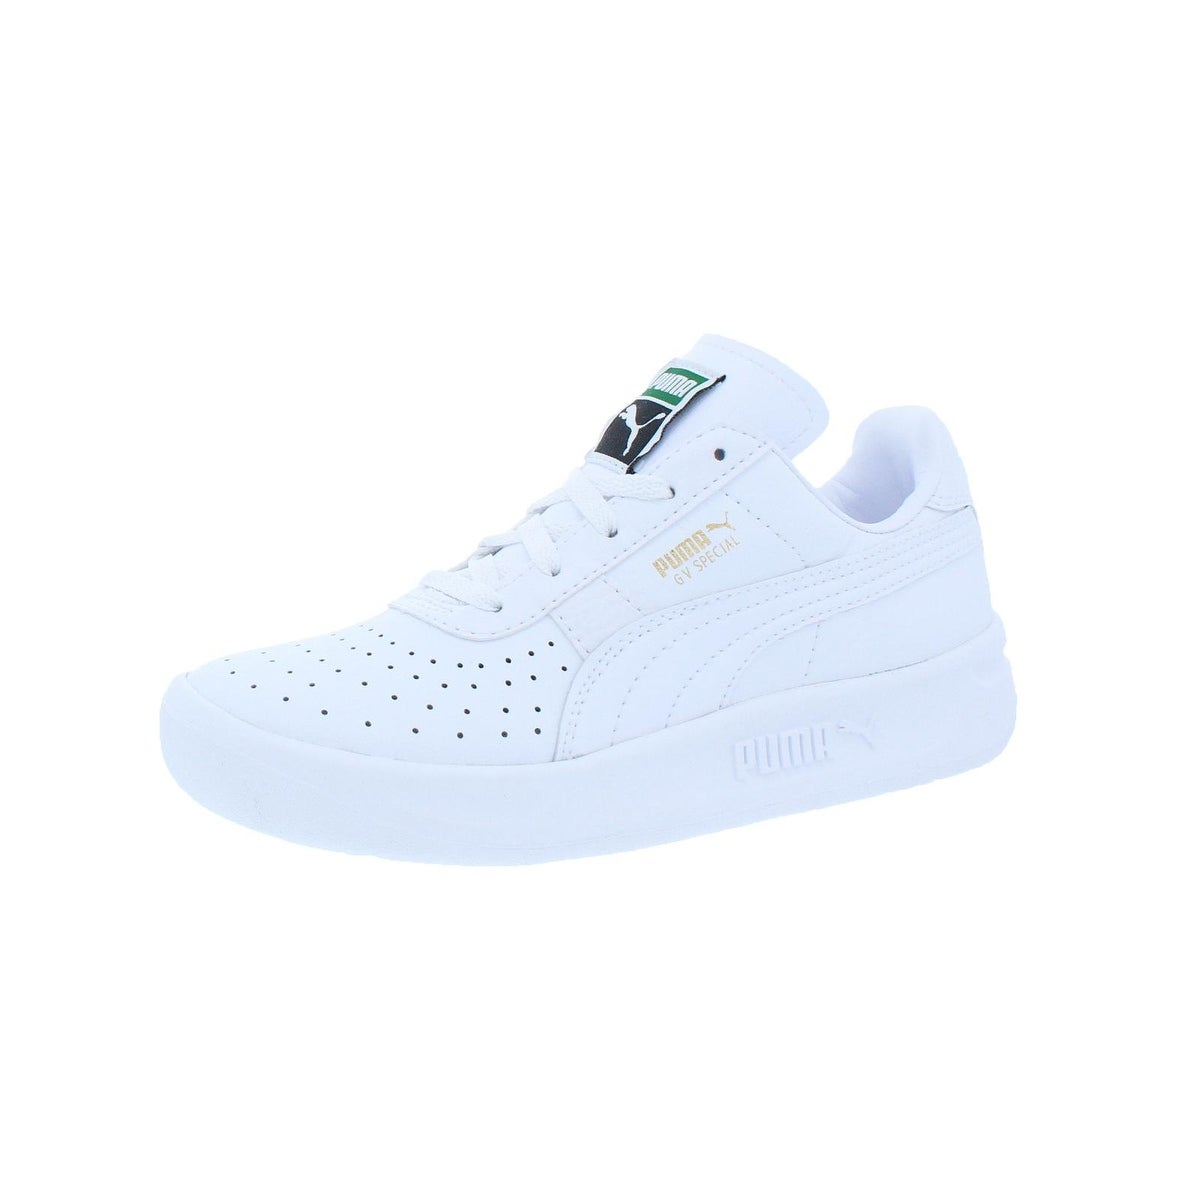 8e838294dd Shop Puma Boys GV Special Athletic Shoes Little Kid Walking - 2.5 medium  (d) little kid - Free Shipping On Orders Over $45 - Overstock - 22411716